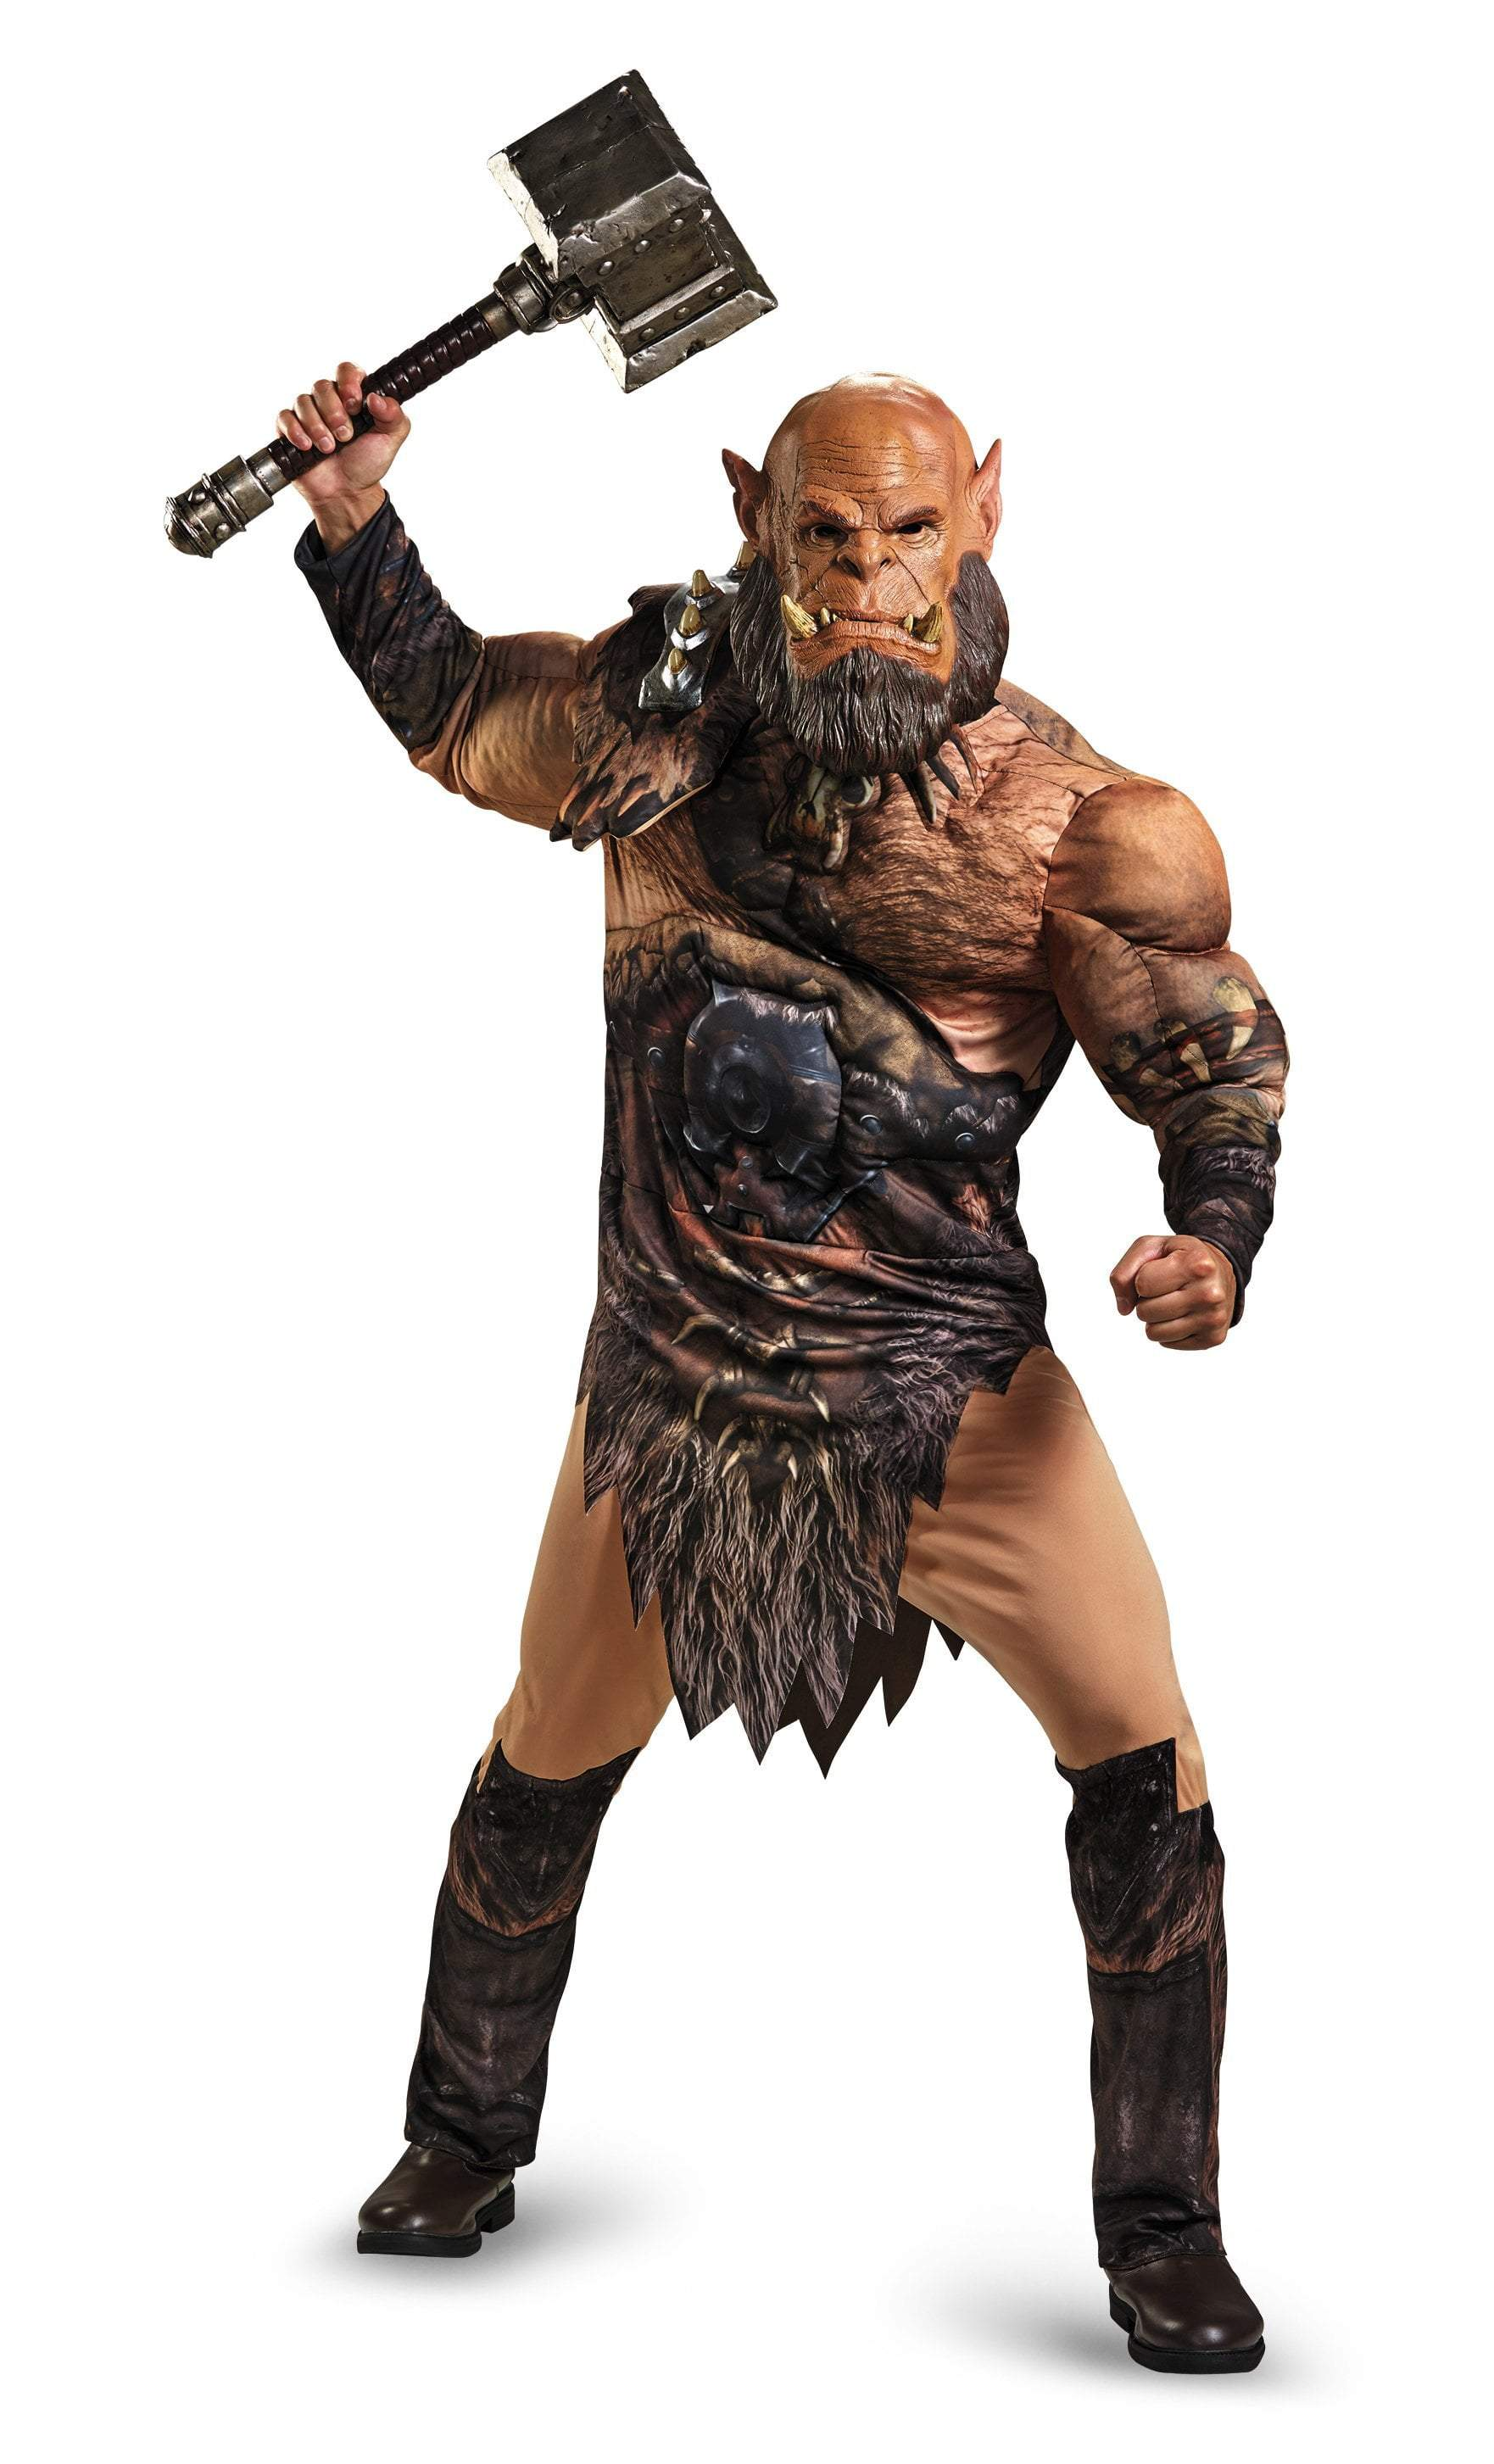 Disguise Costumes Adult Orgrim Deluxe Muscle Costume - Warcraft